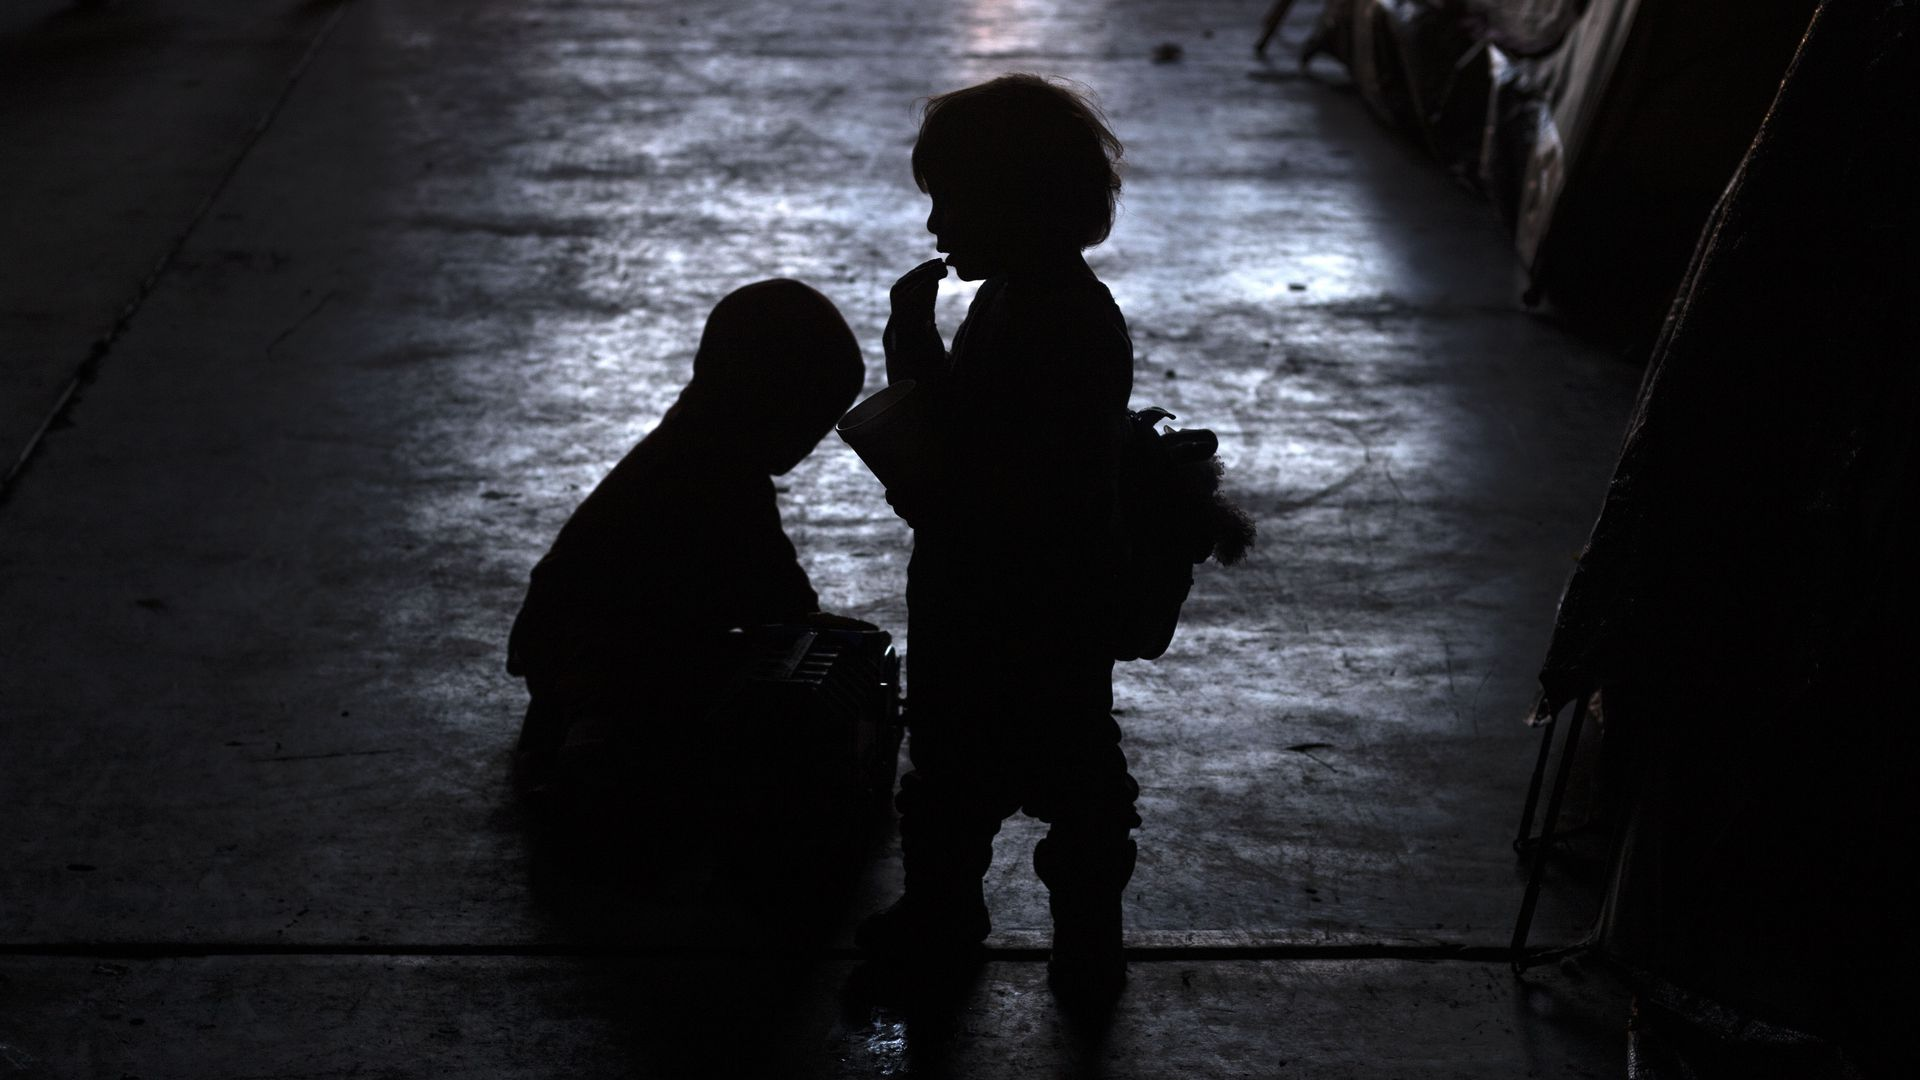 Silhouettes of two young, migrant children at night by the border